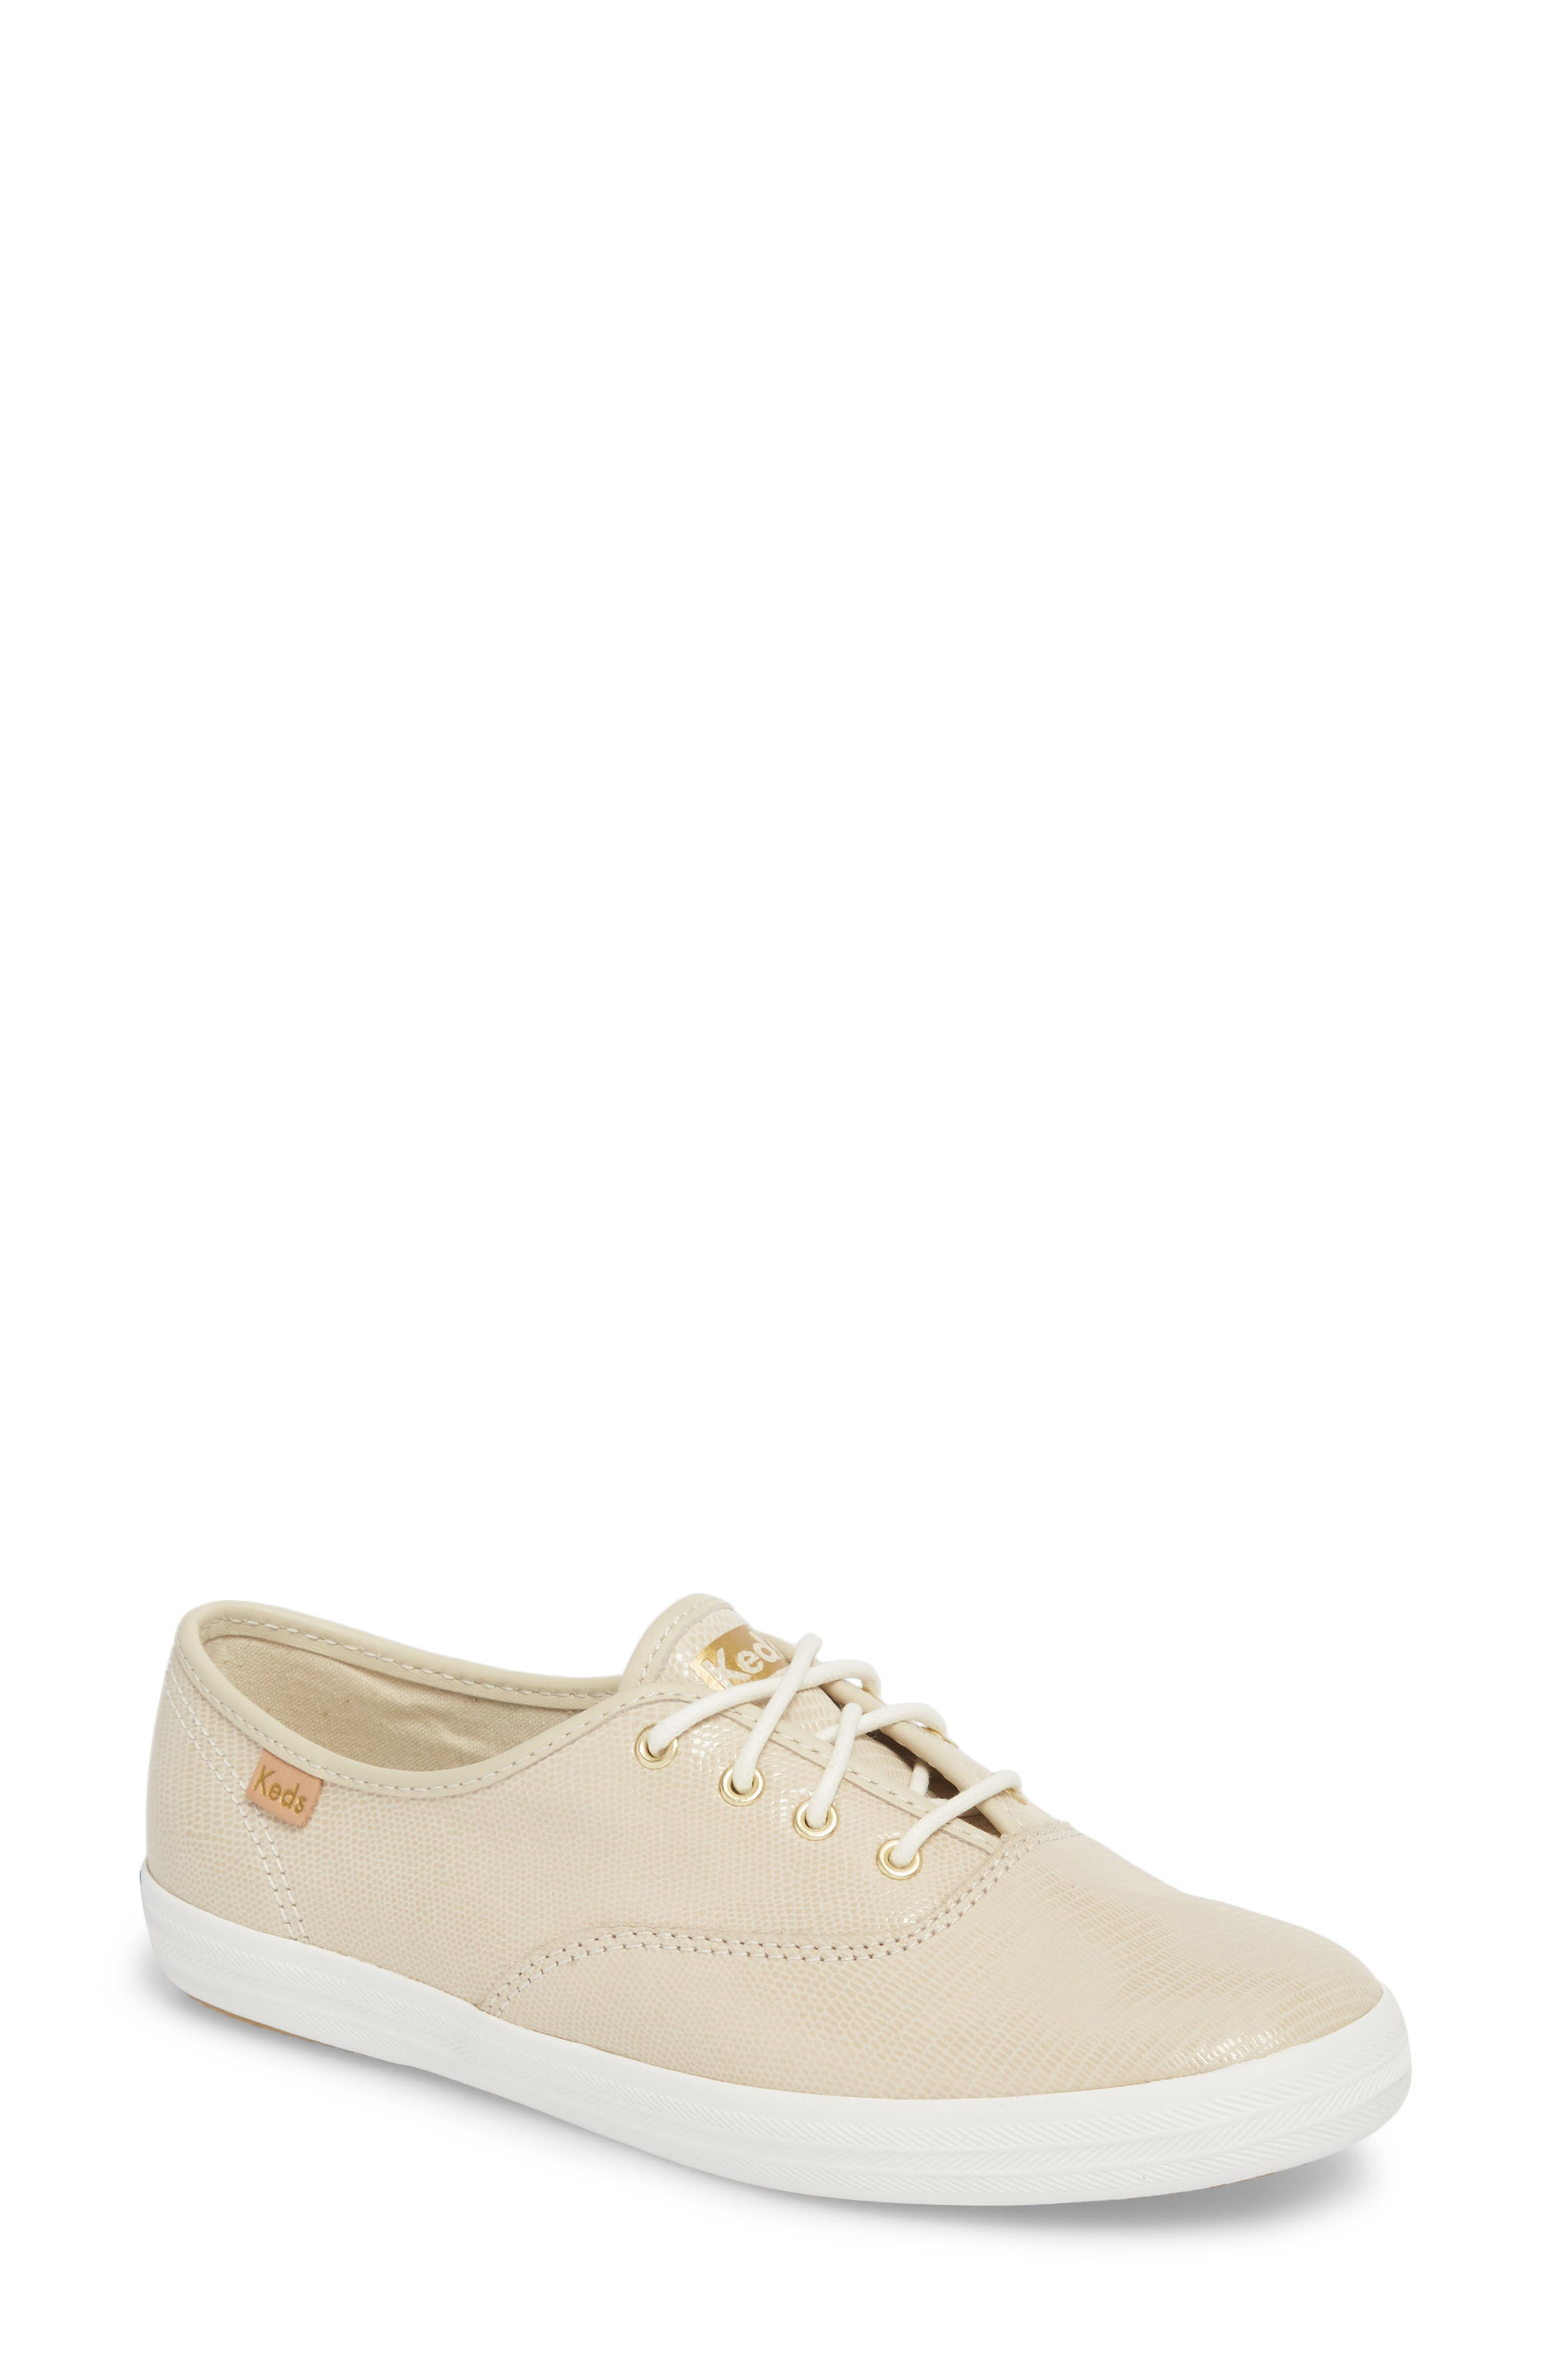 Champion Pretty Leather Sneaker,                             Main thumbnail 1, color,                             Ivory